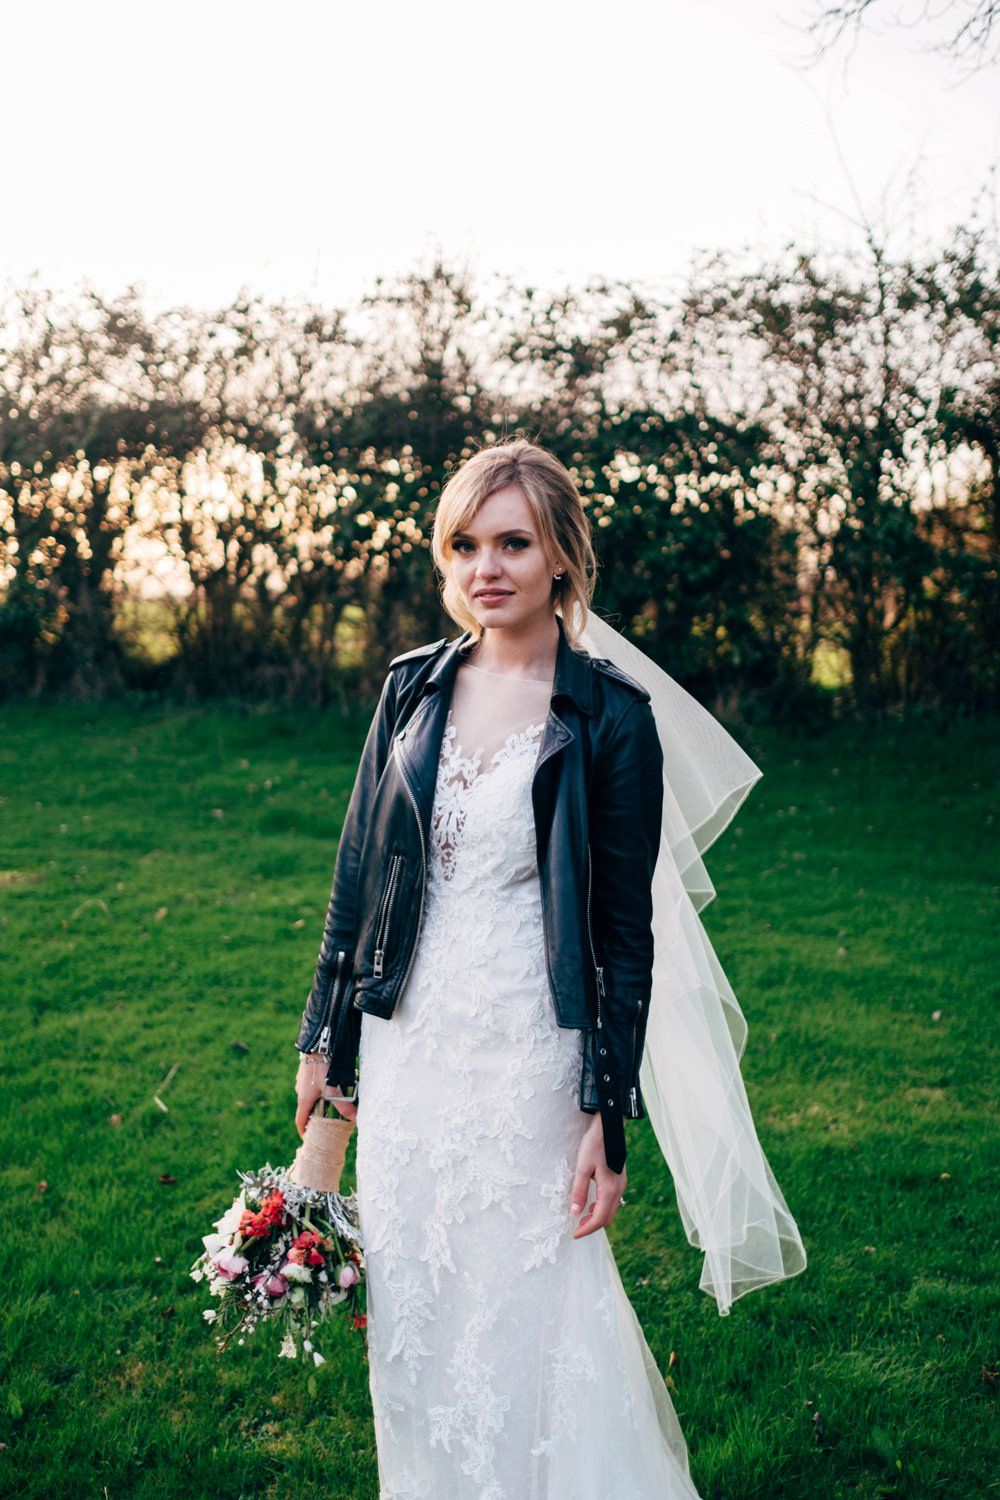 Spring Wedding at Southend Barns in Chichester by Dale Weeks ...